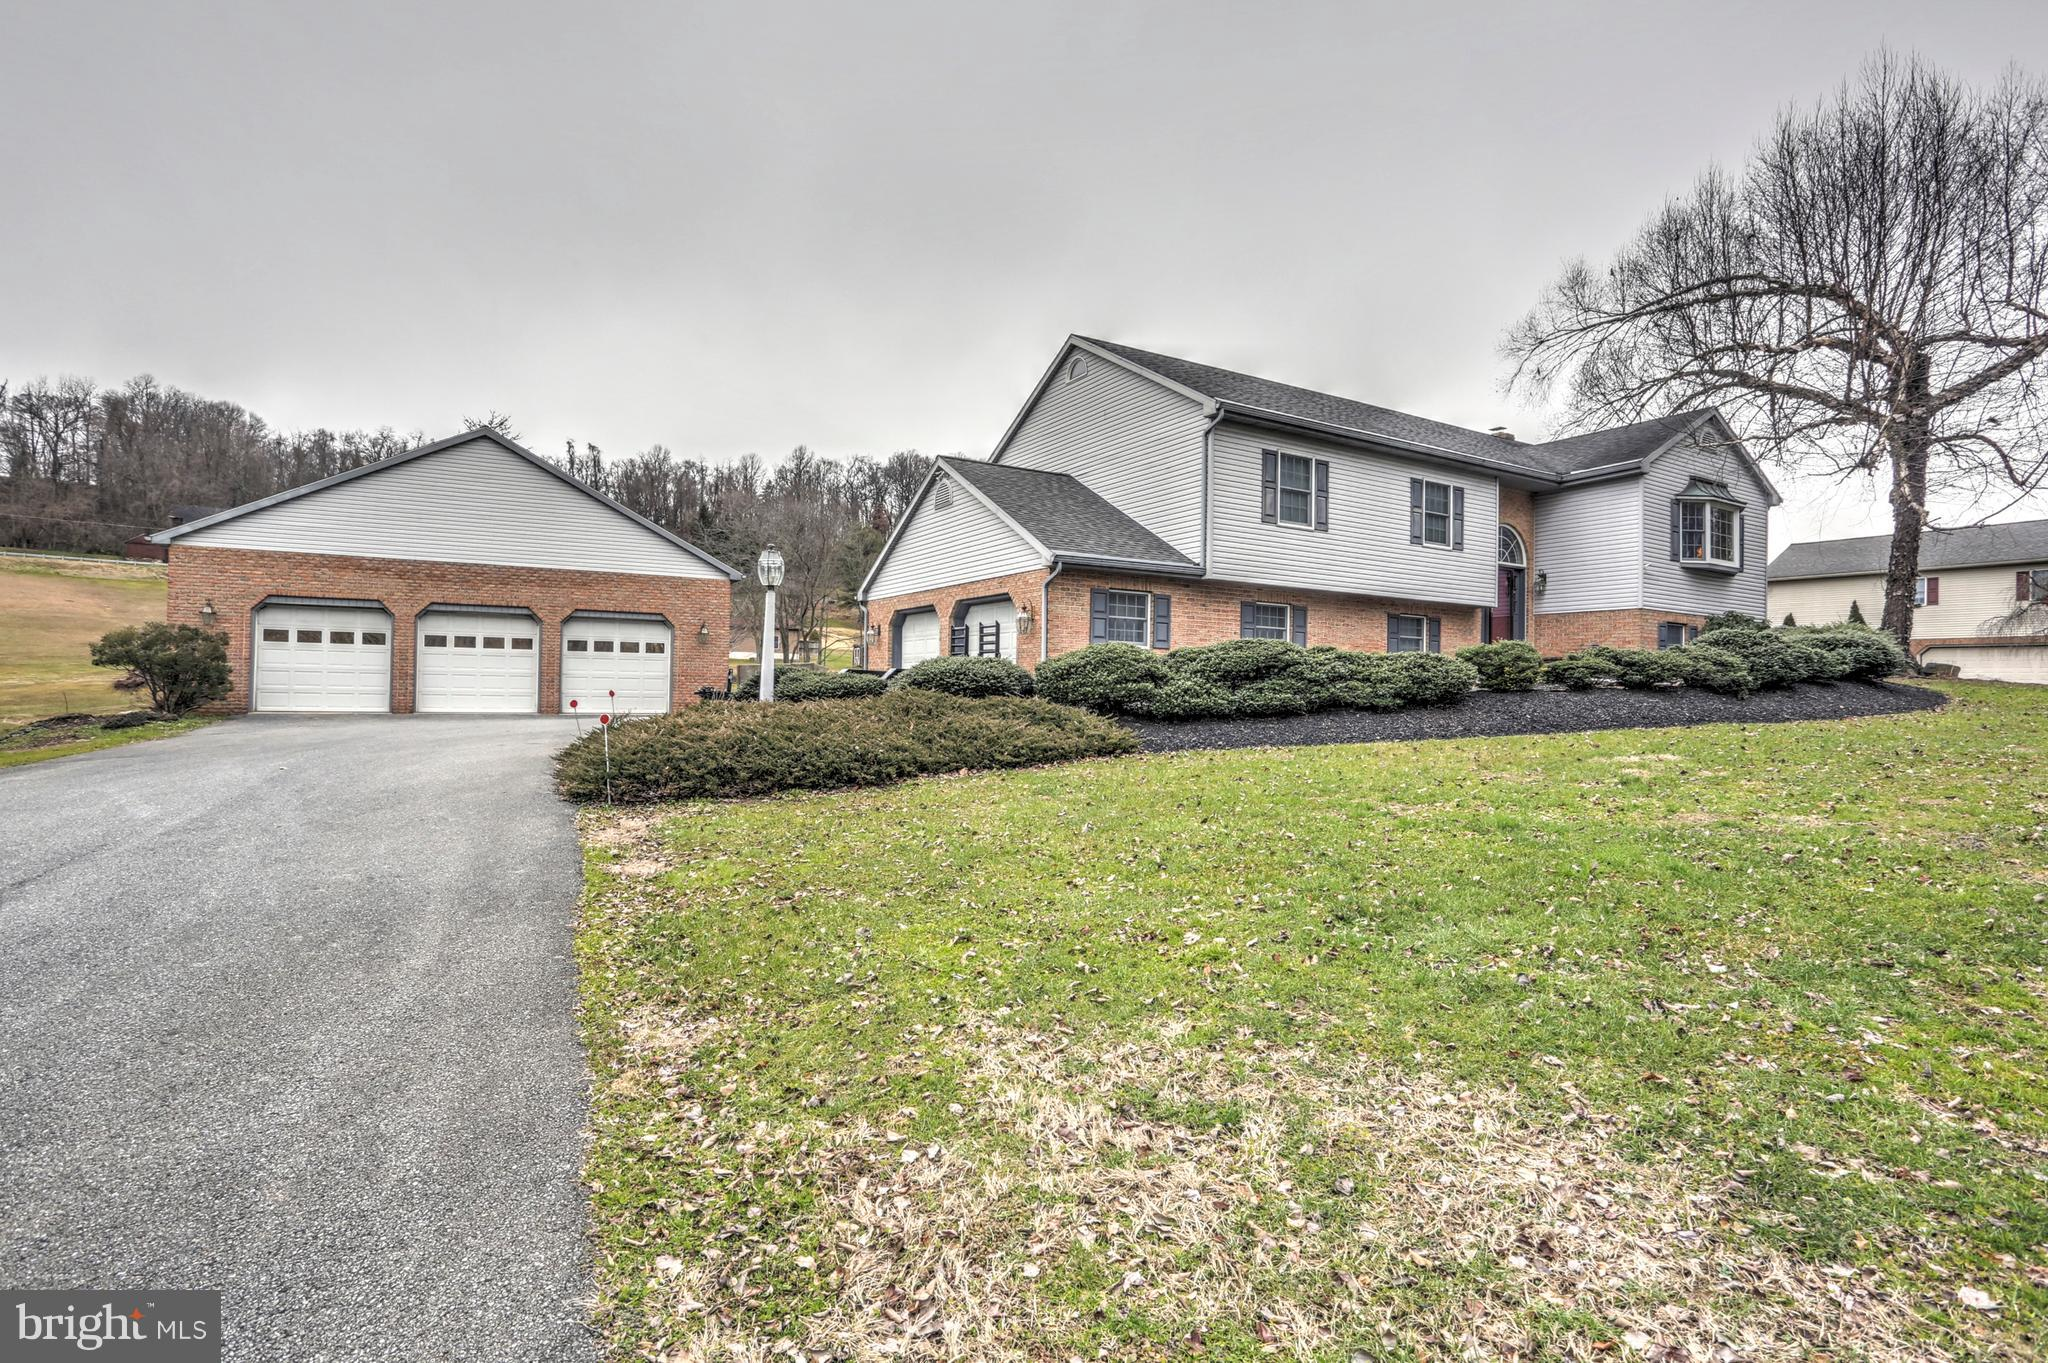 1119 RAWLINSVILLE ROAD, WILLOW STREET, PA 17584